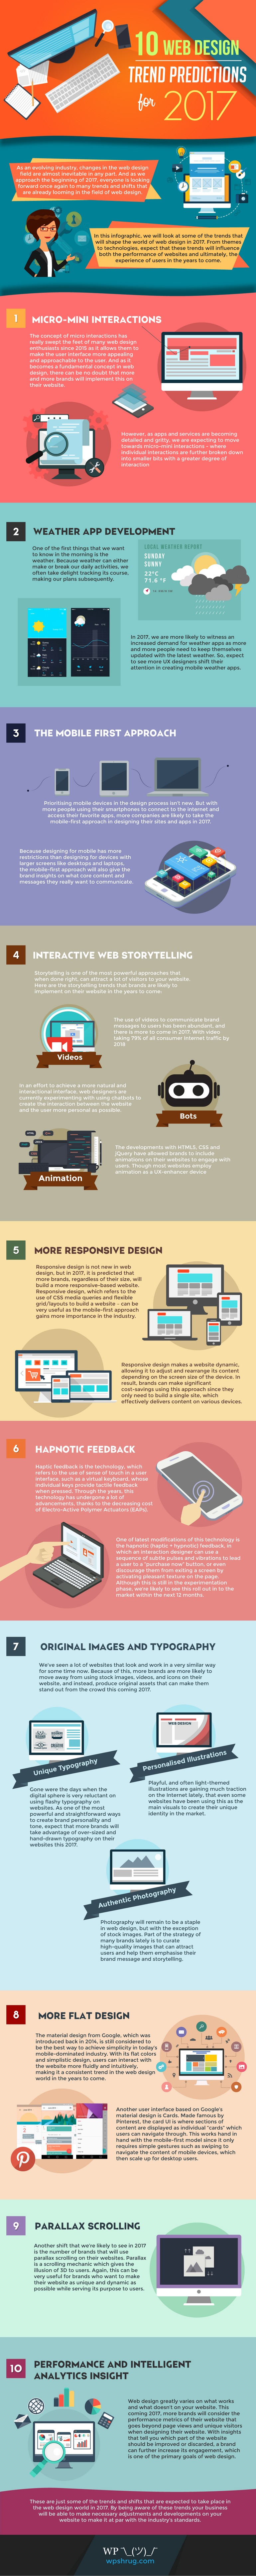 Latest Trends in Web Design this 2017 Infographic